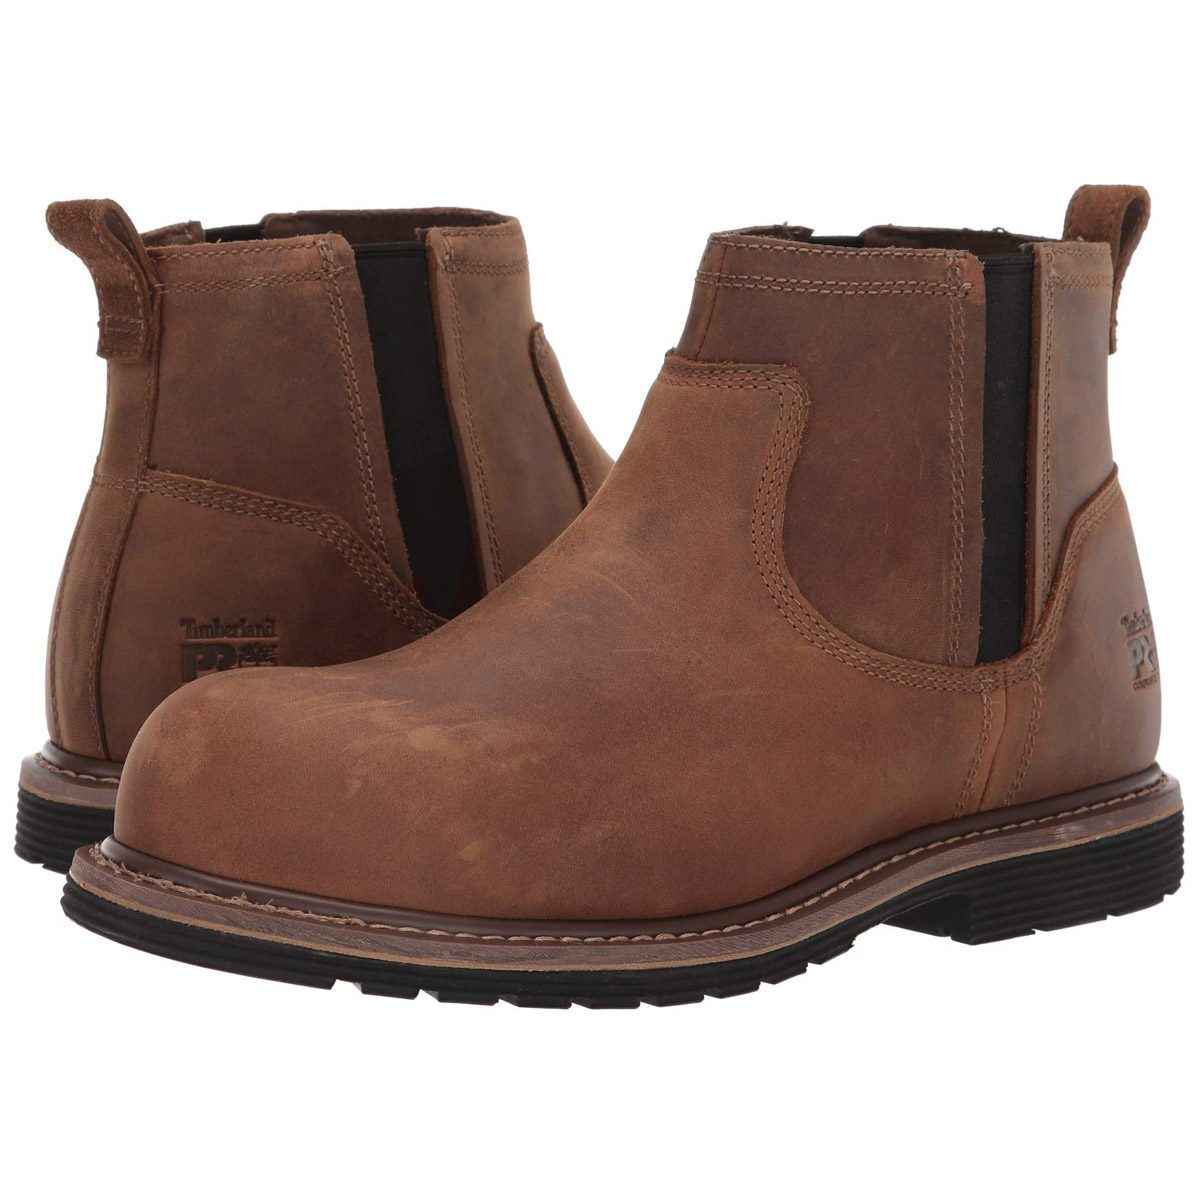 Timberland PRO Millworks Chelsea Composite Safety Toe work boots